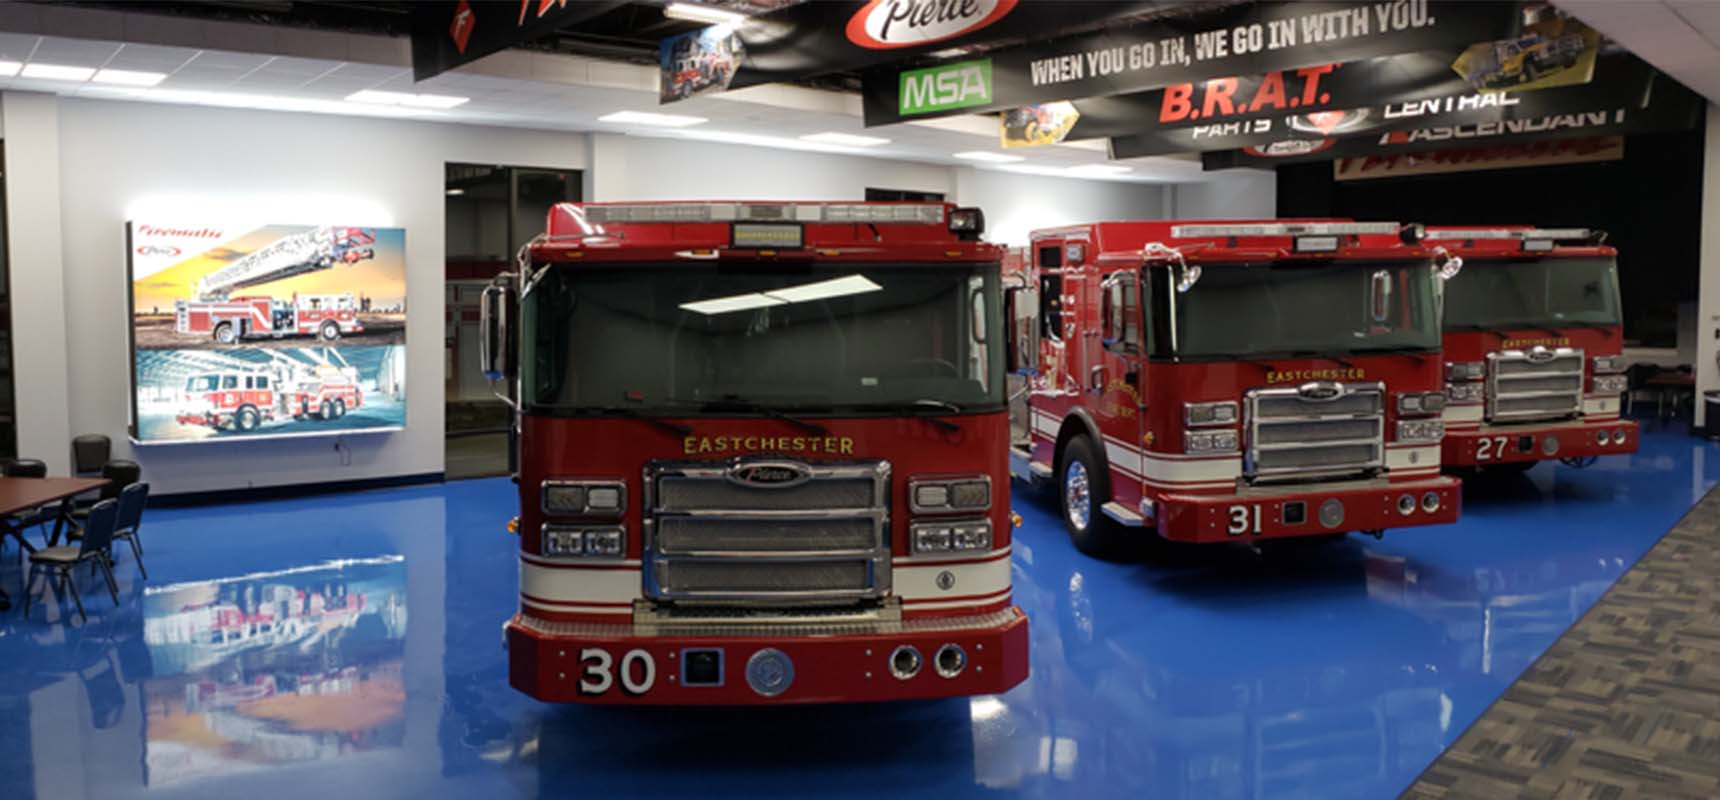 Firematic Supply Company has opened a new showroom and service center